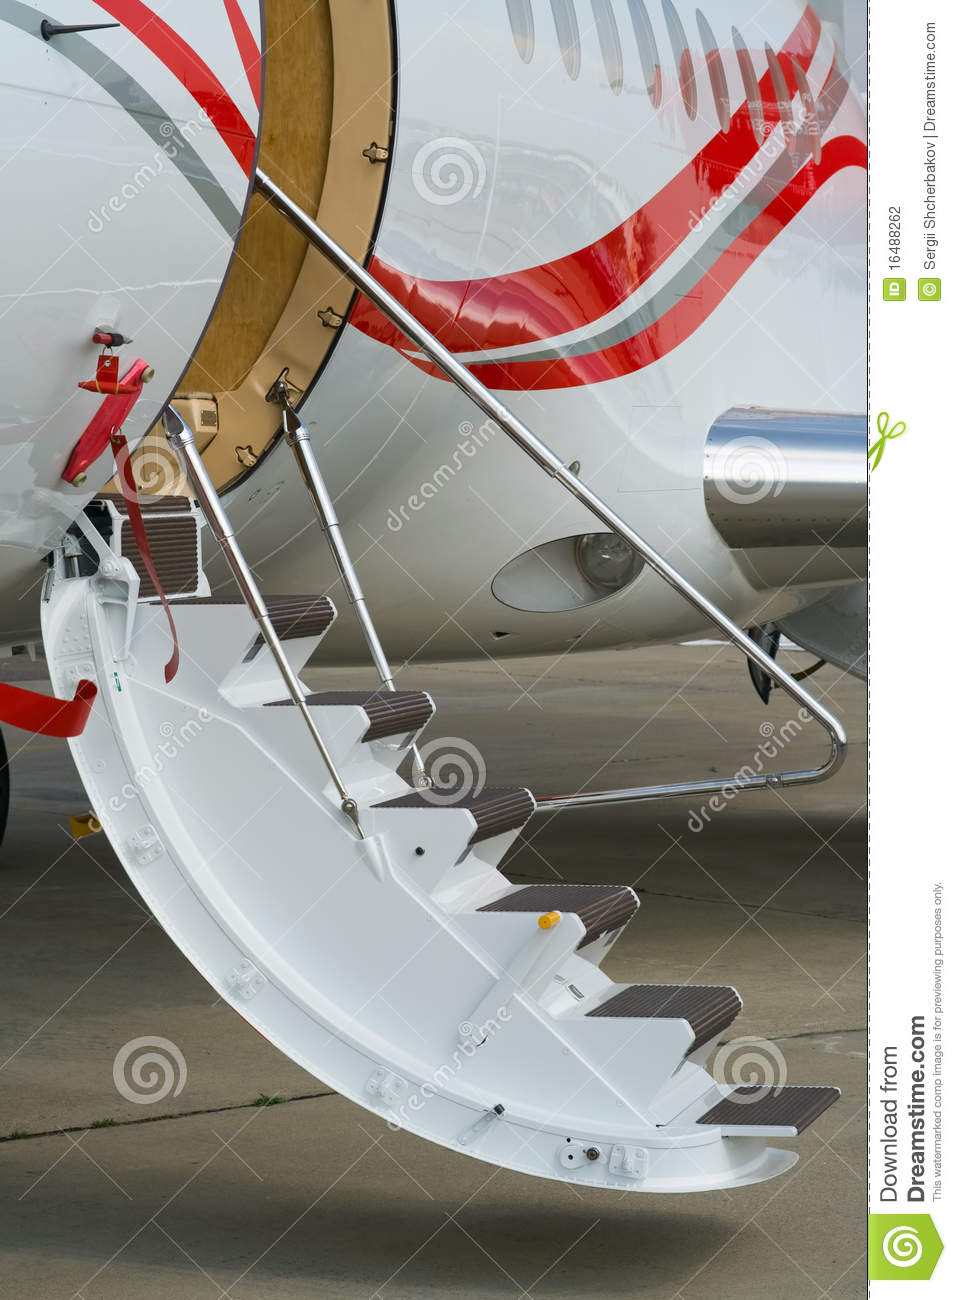 Airplane Low Air Stairs Stock Photography Image 16488262